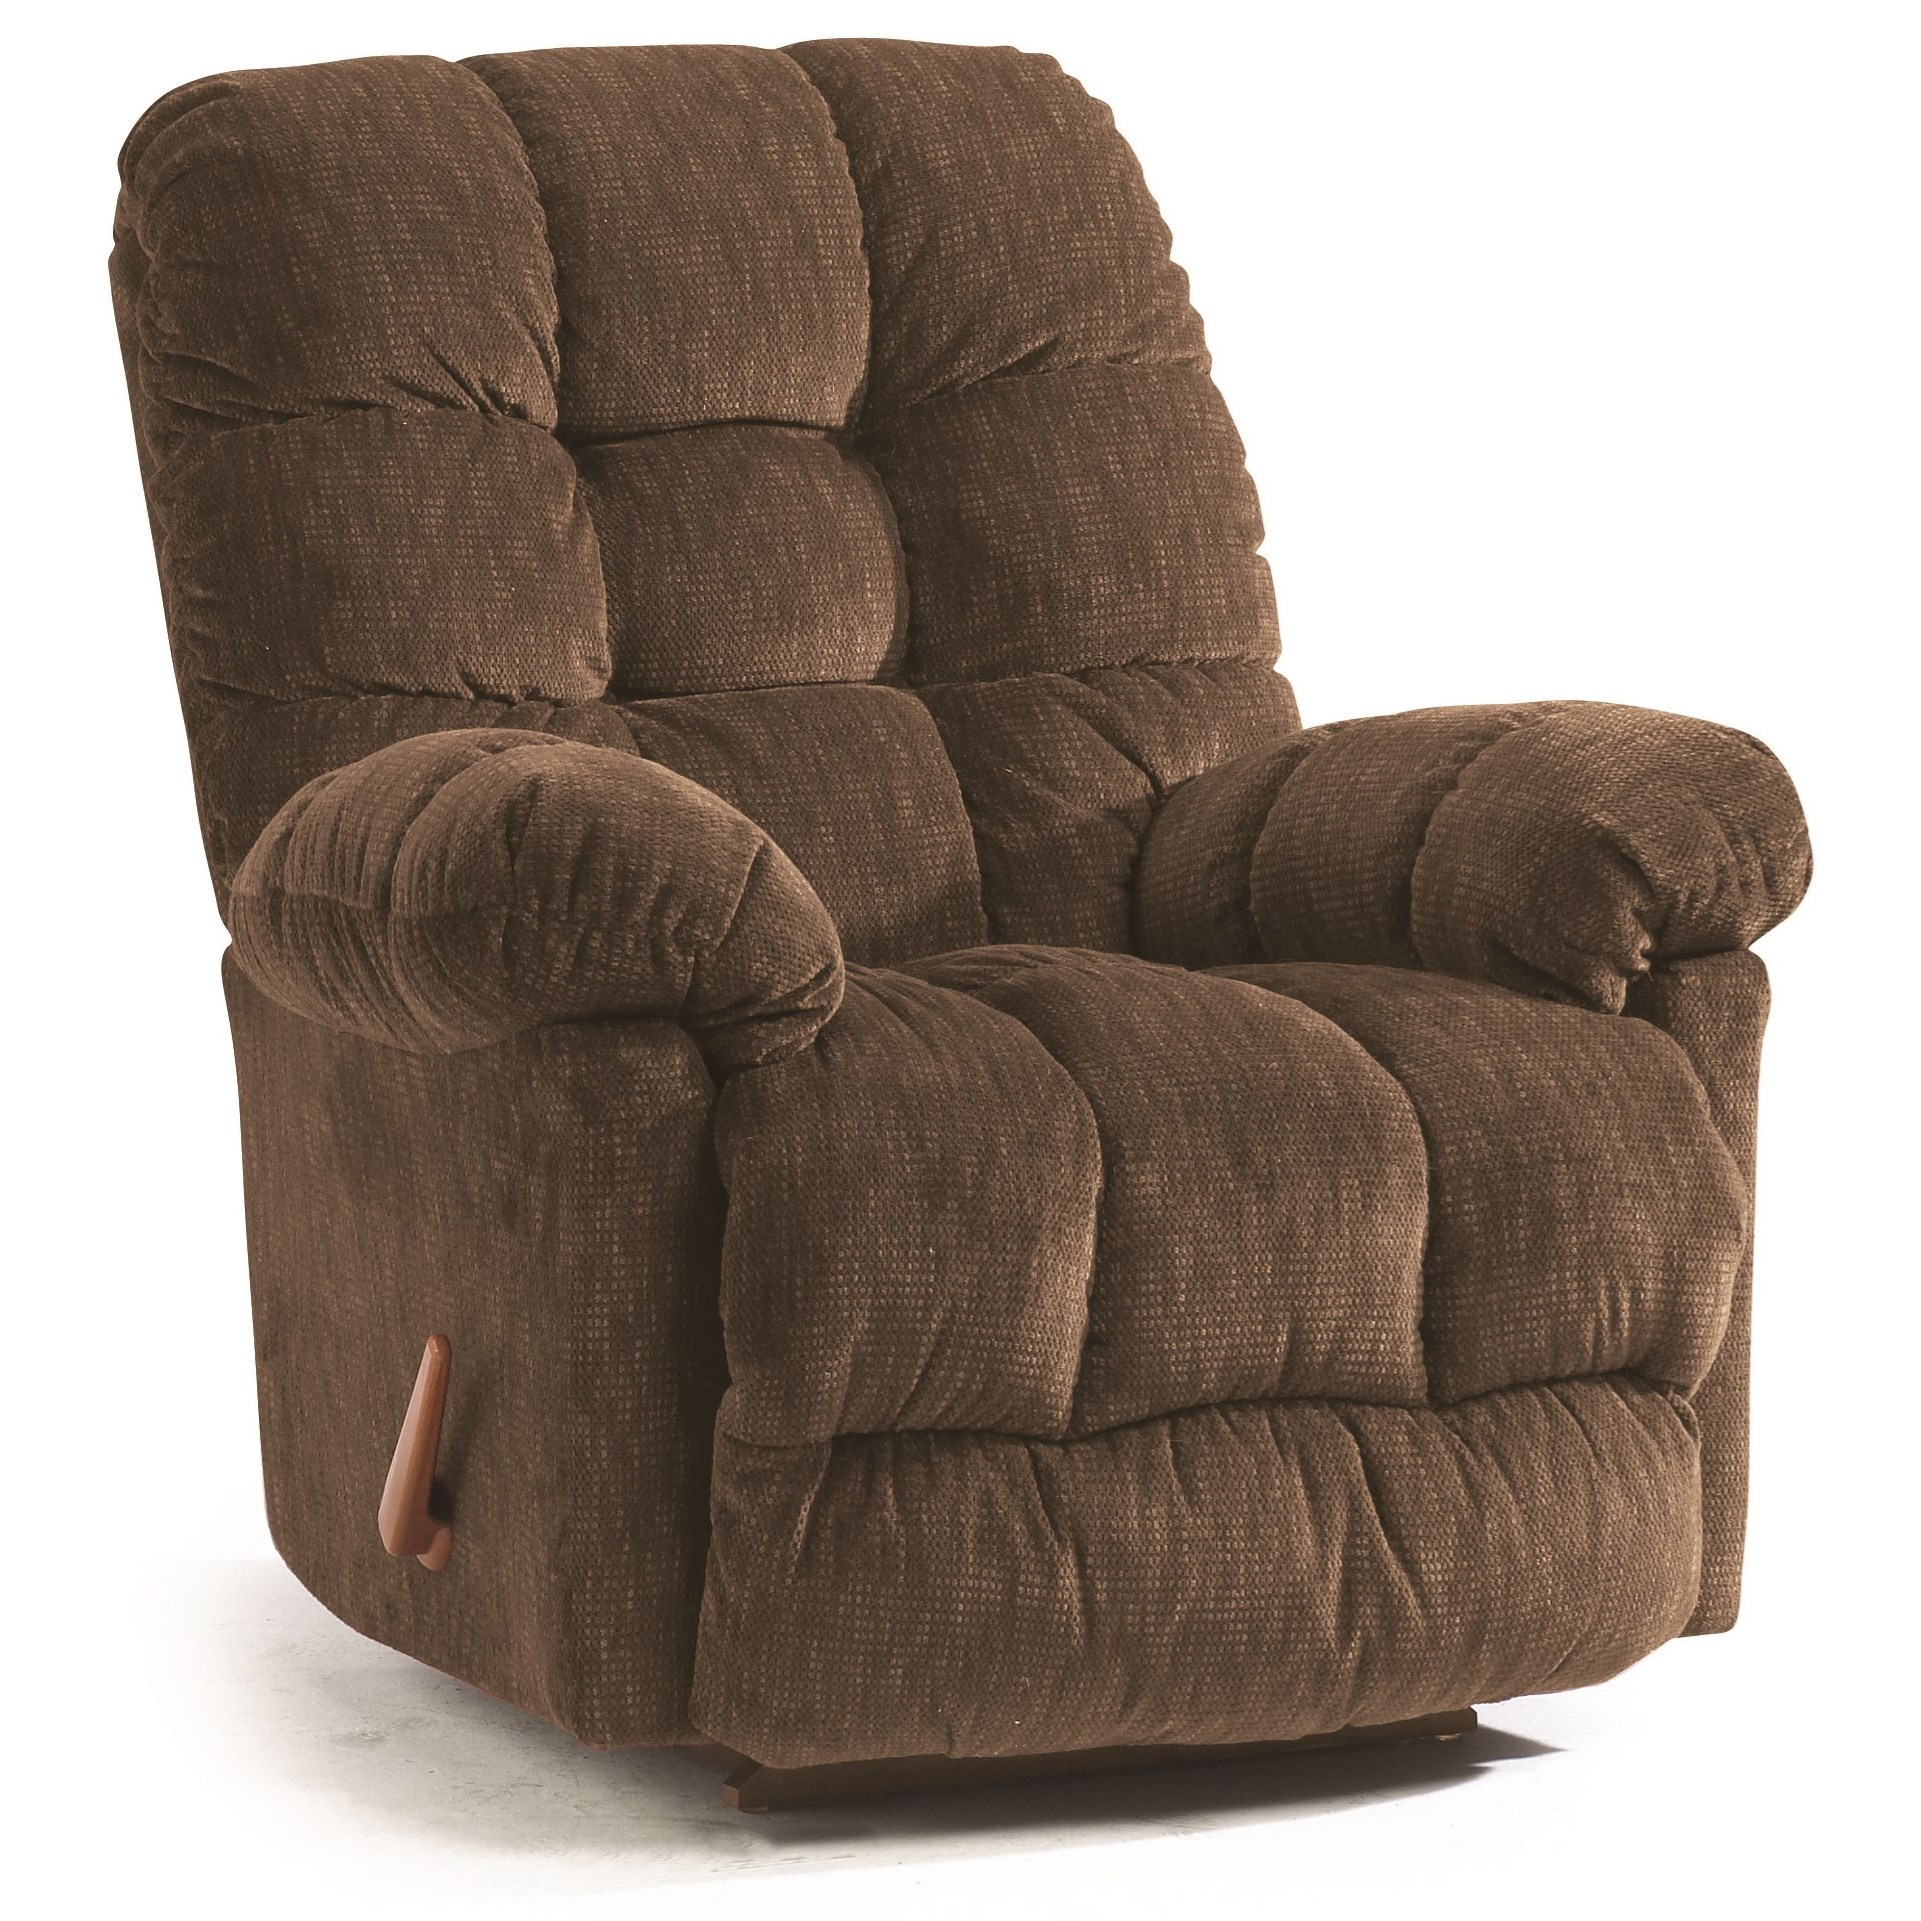 Best Home Furnishings Medium Recliners Brosmer Rocking